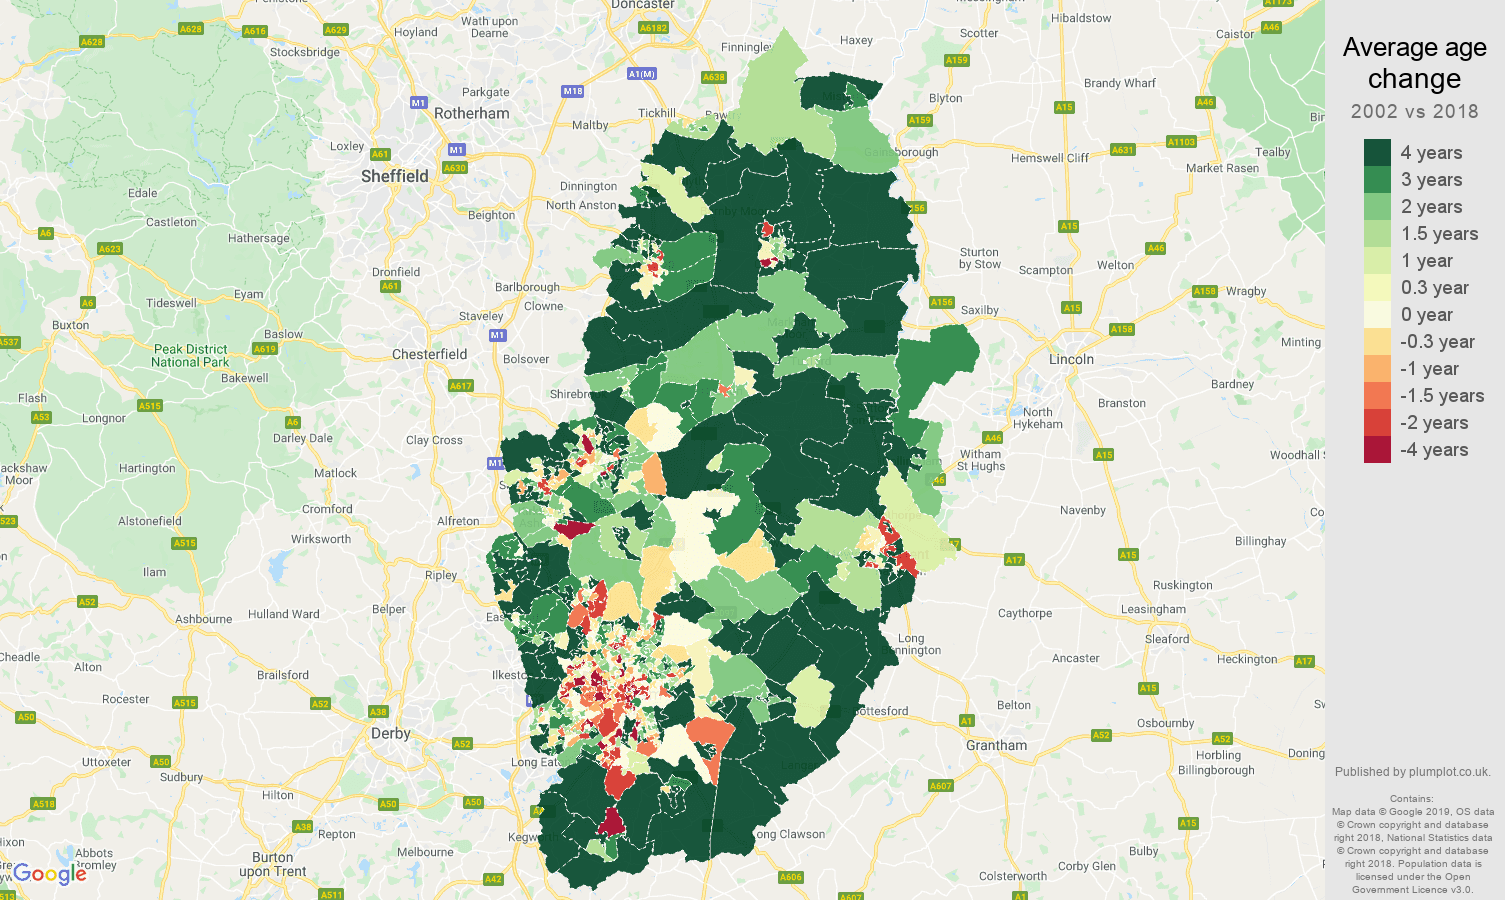 Nottinghamshire average age change map